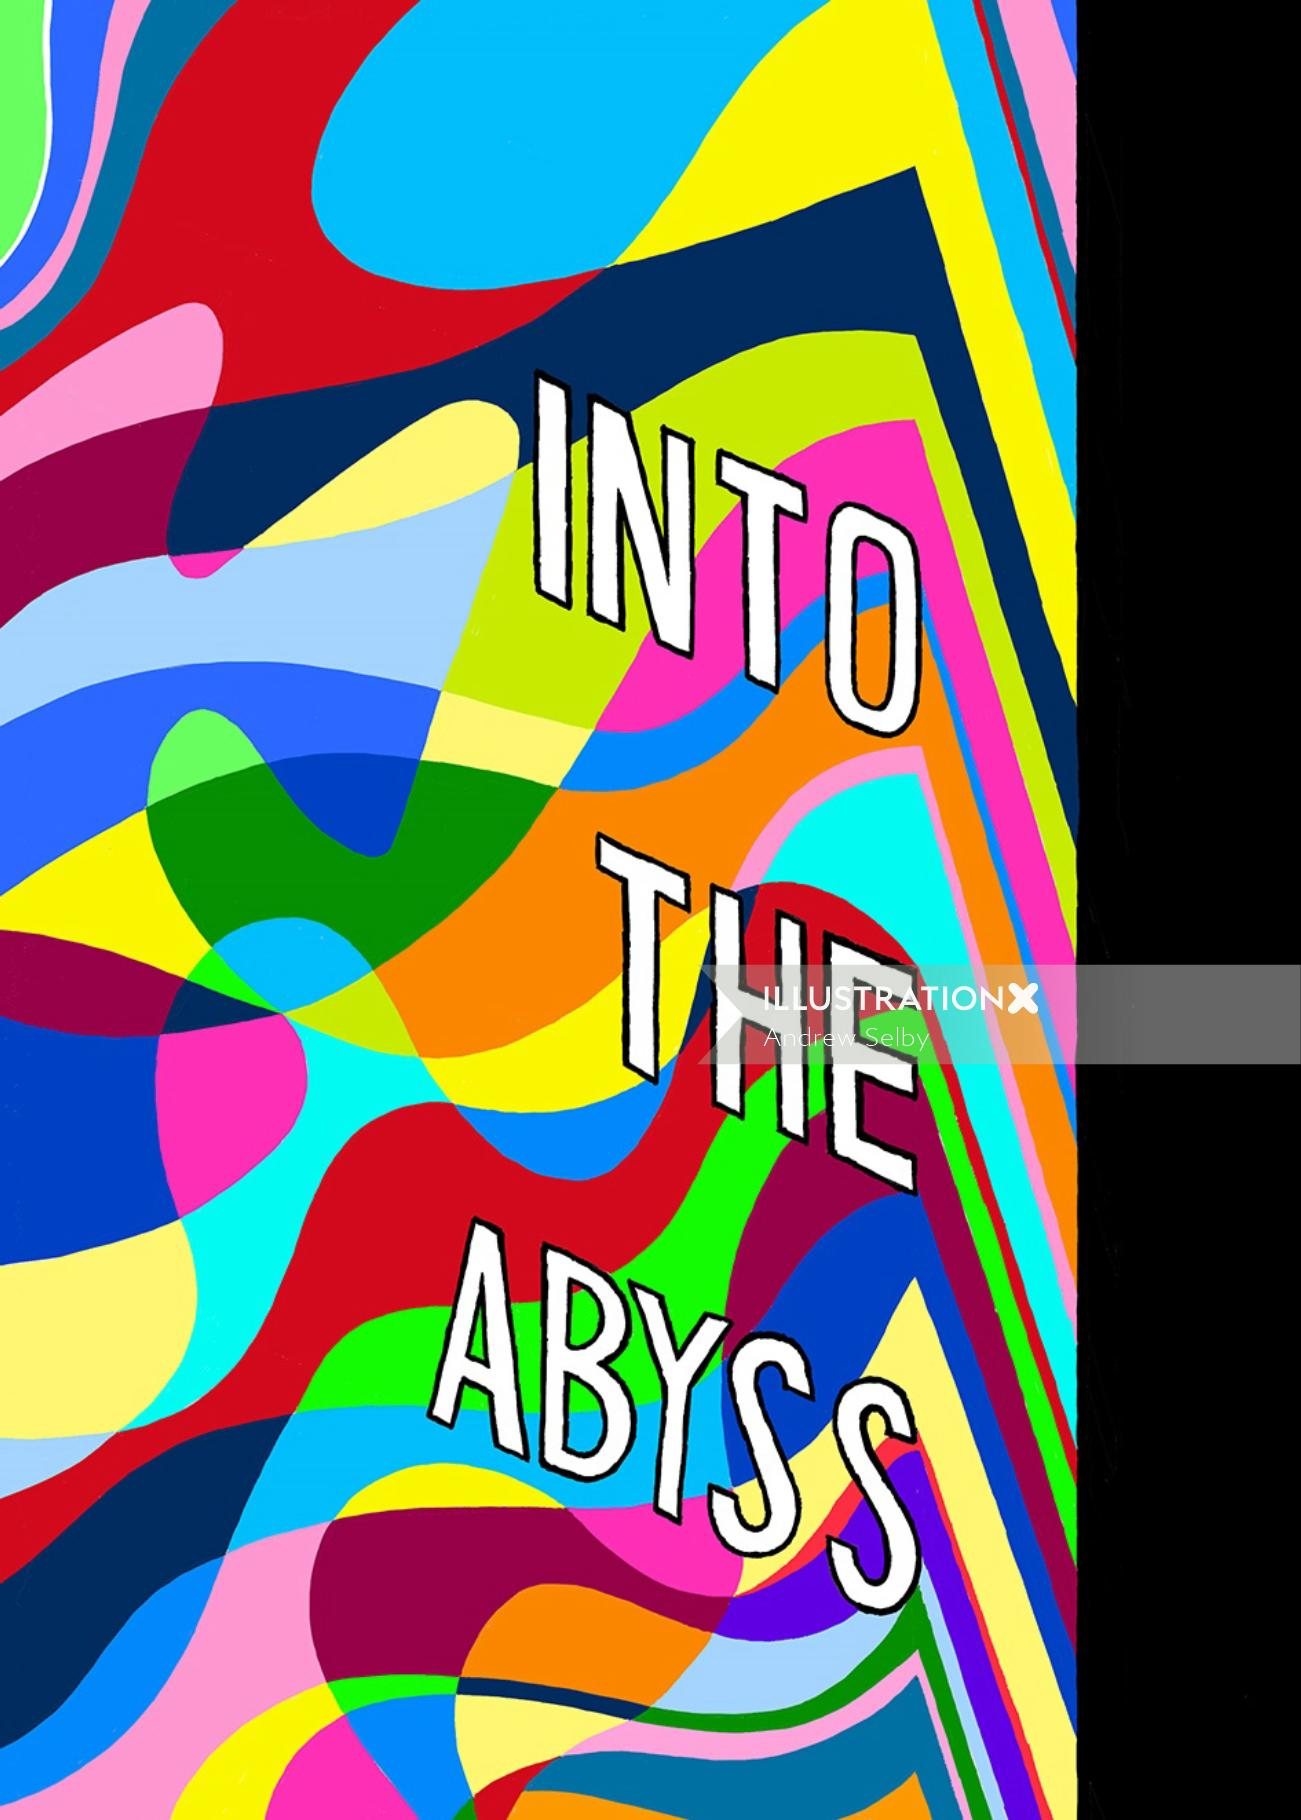 Into the abyss lettering art on book cover